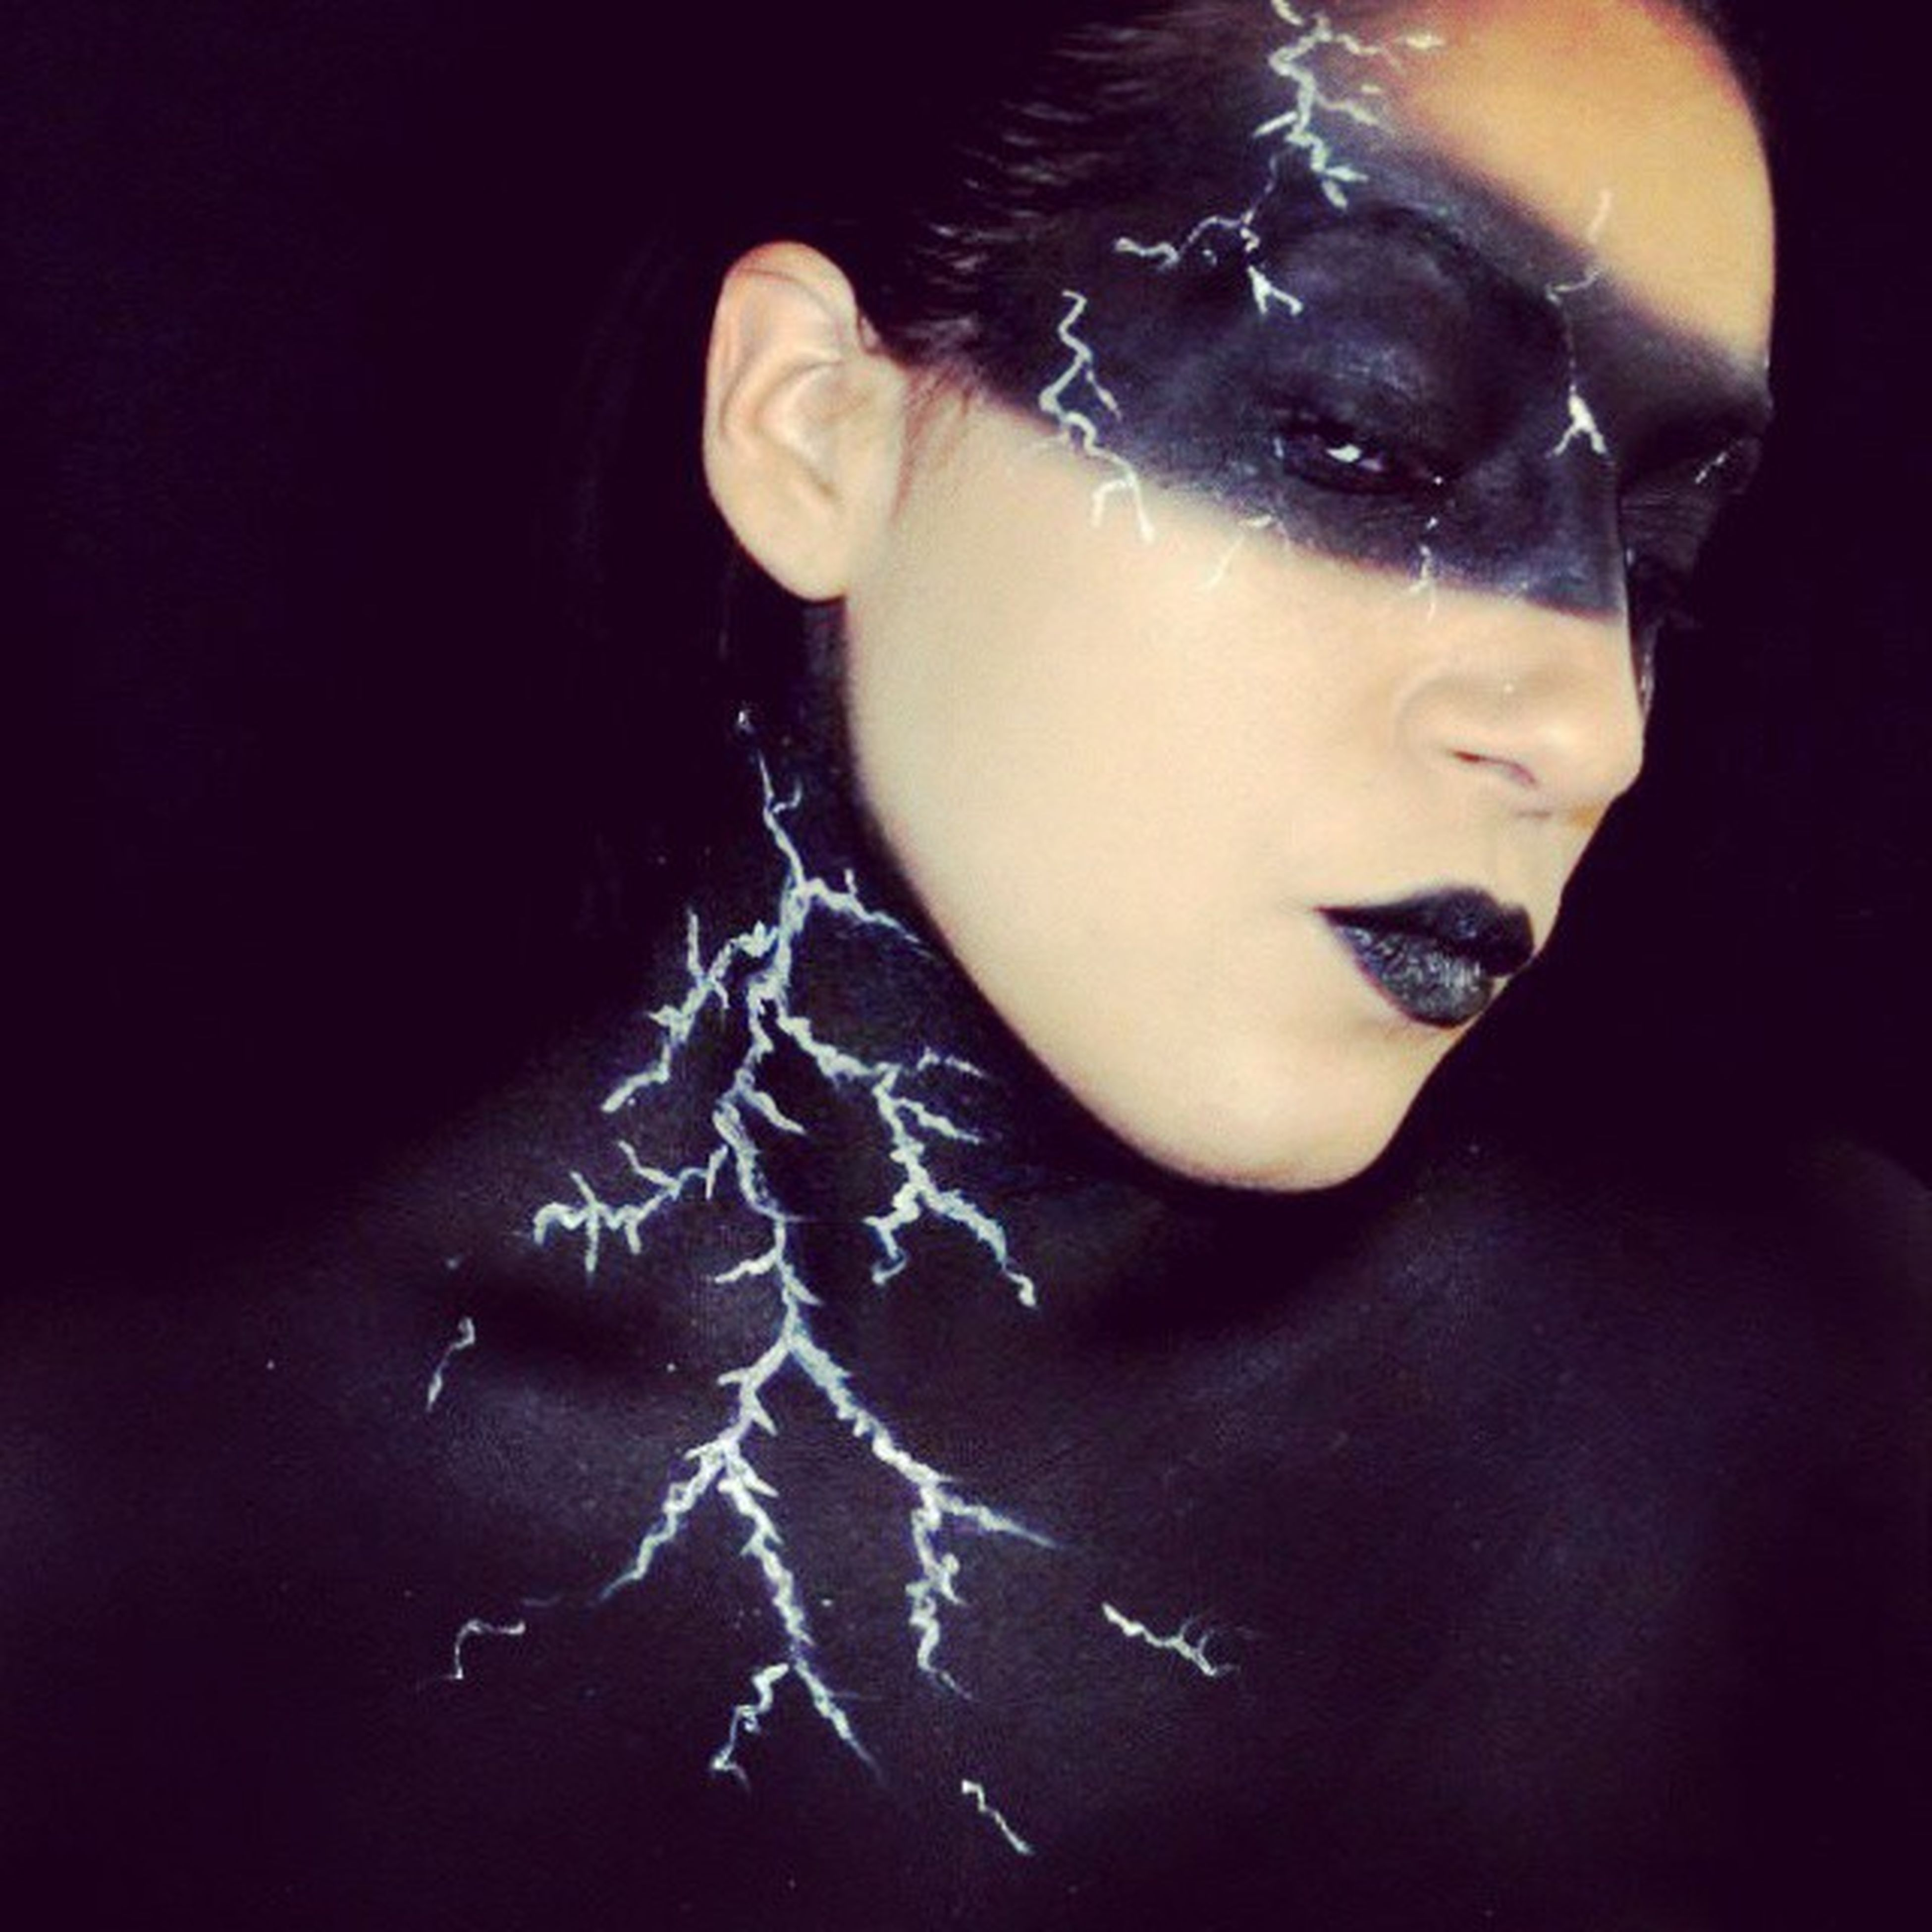 Witchwrath Halloweem Witch Wrath makeupartist makeup maquillage black cpl coupdepinceaudelilly